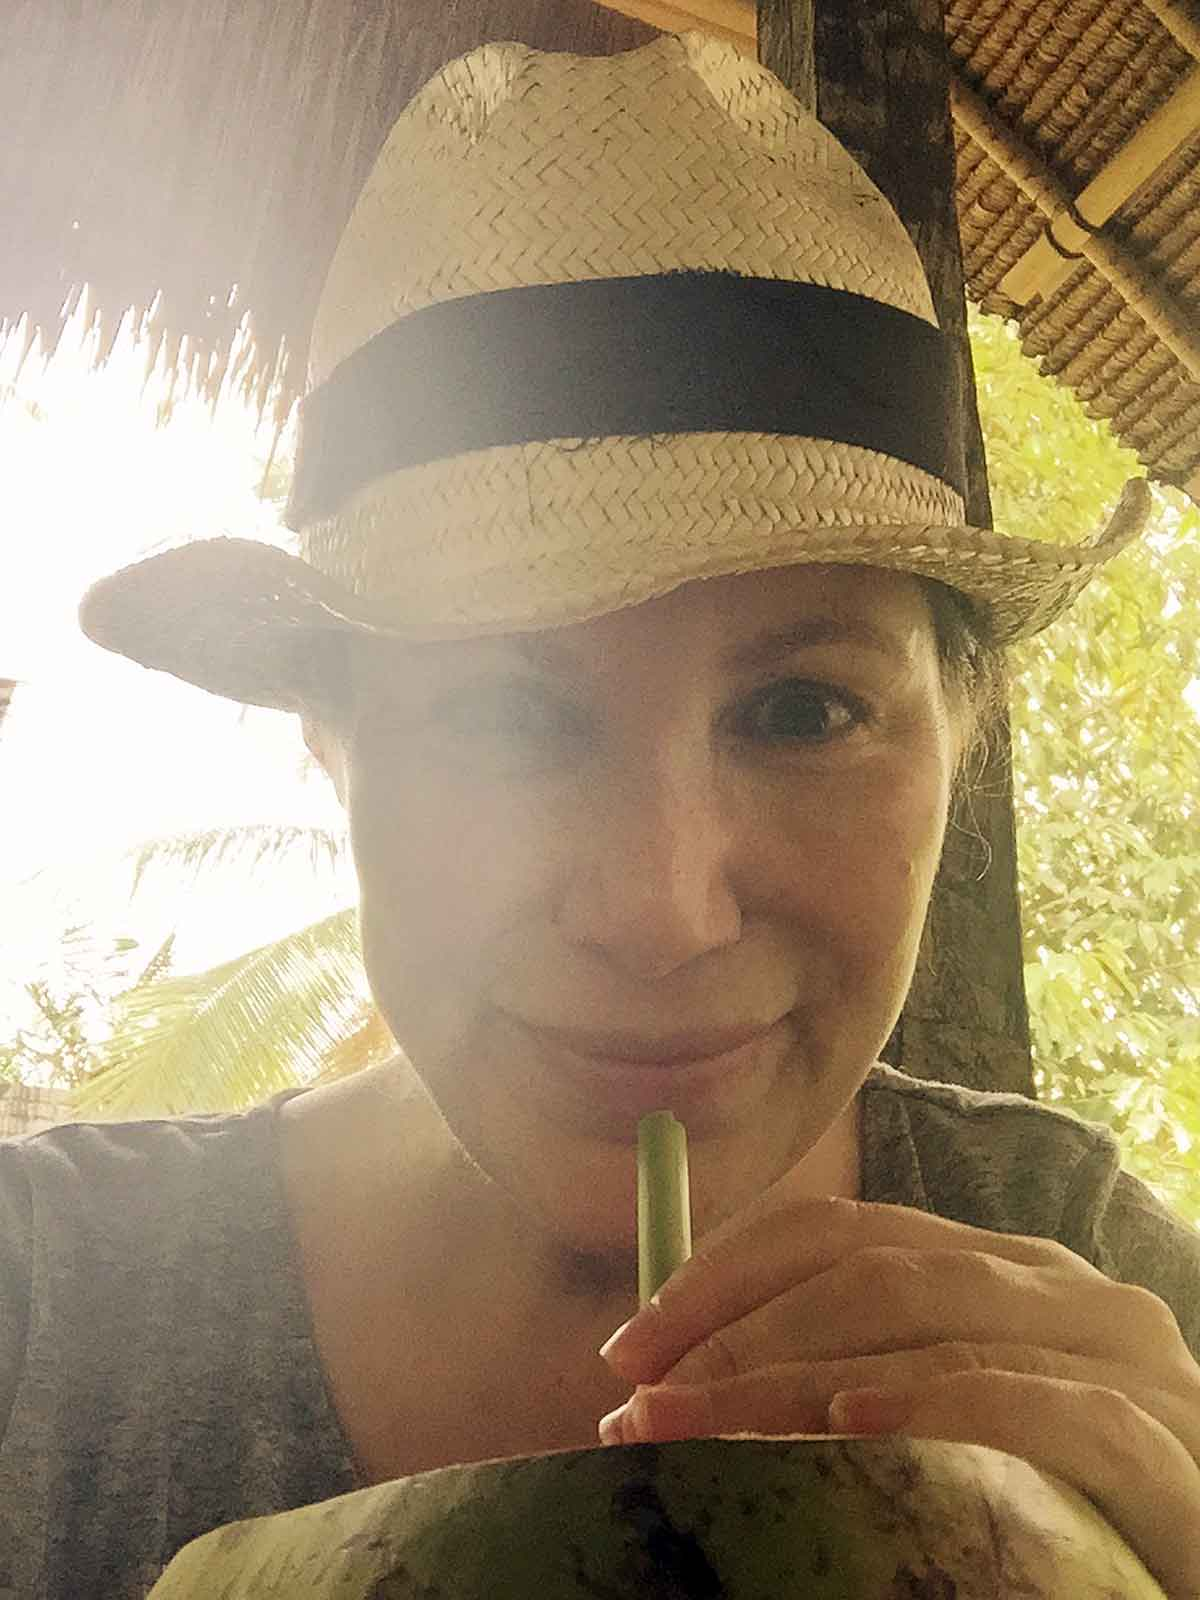 Karin is detoxing on Bali, here sipping on fresh coconut.